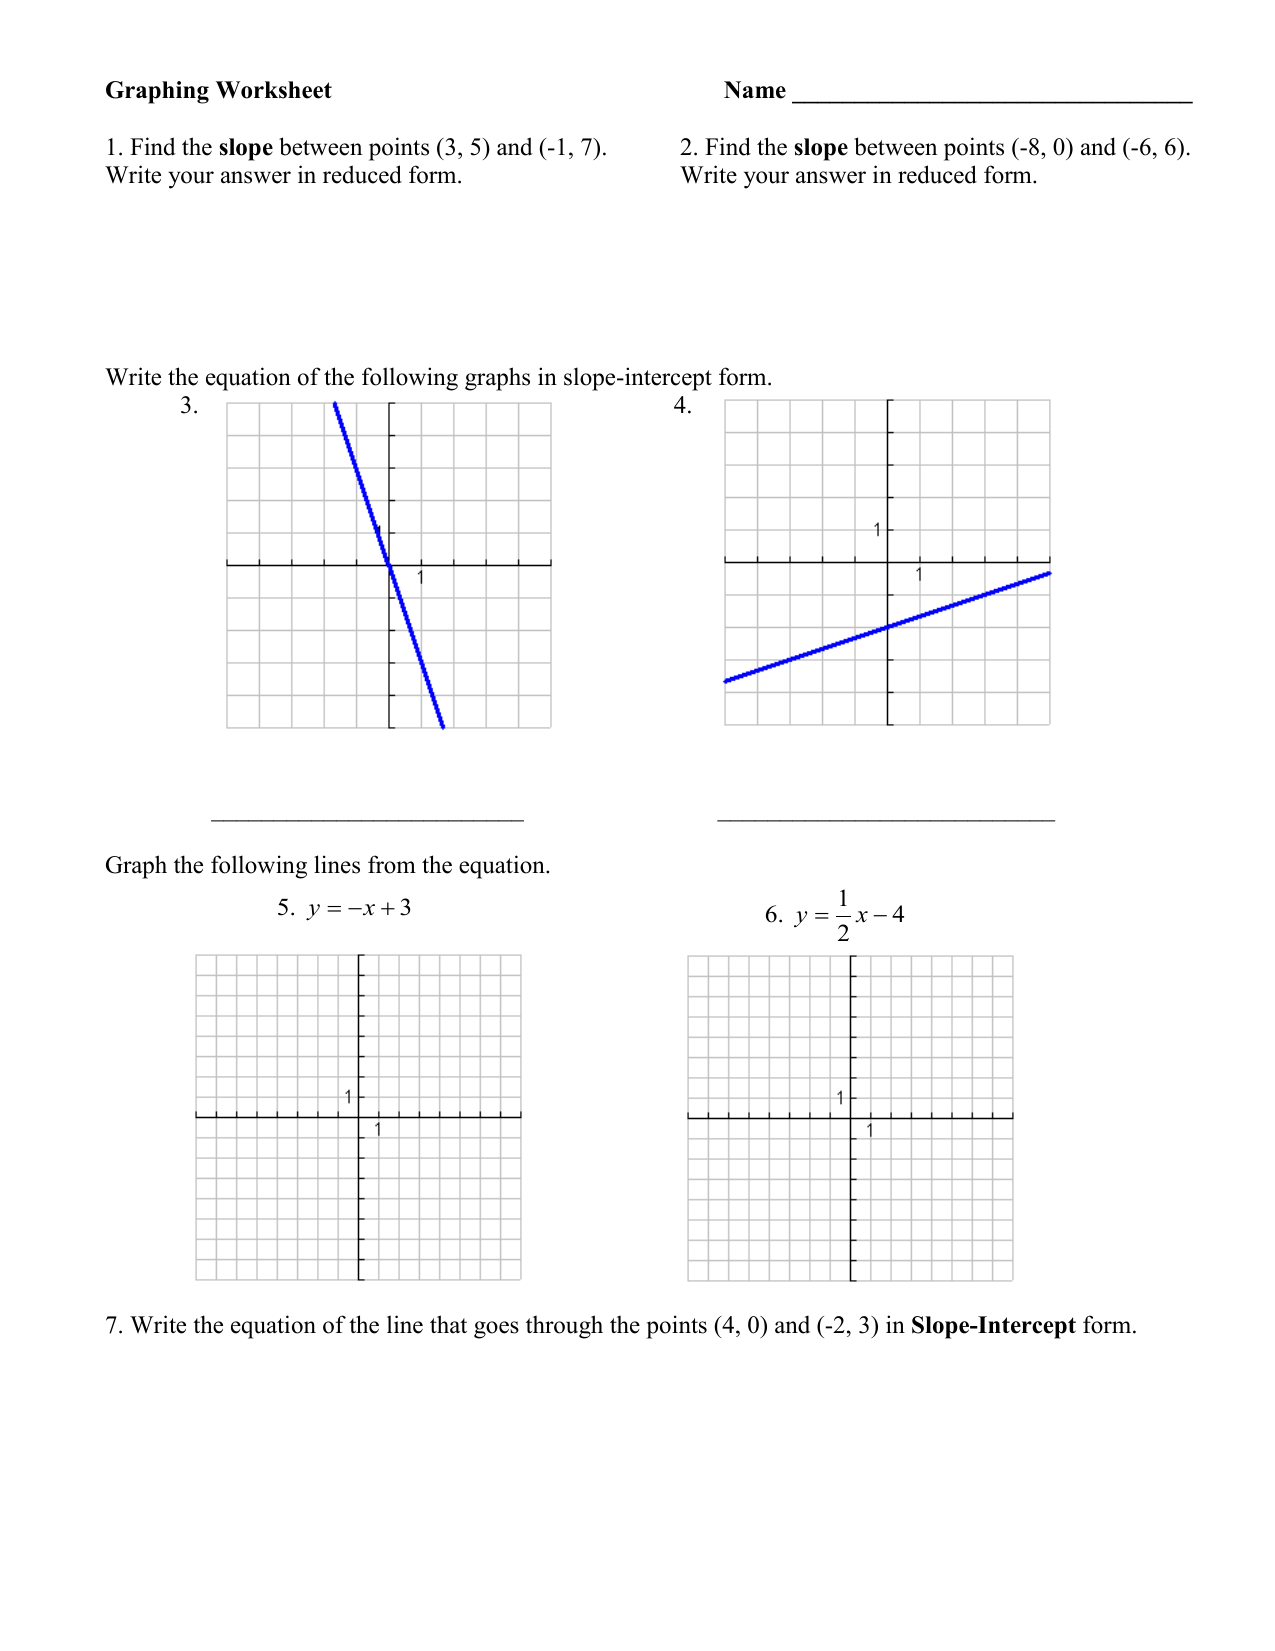 Graphing Linear Equations In Slope Intercept Form Worksheet – Graphing Slope Intercept Form Worksheet